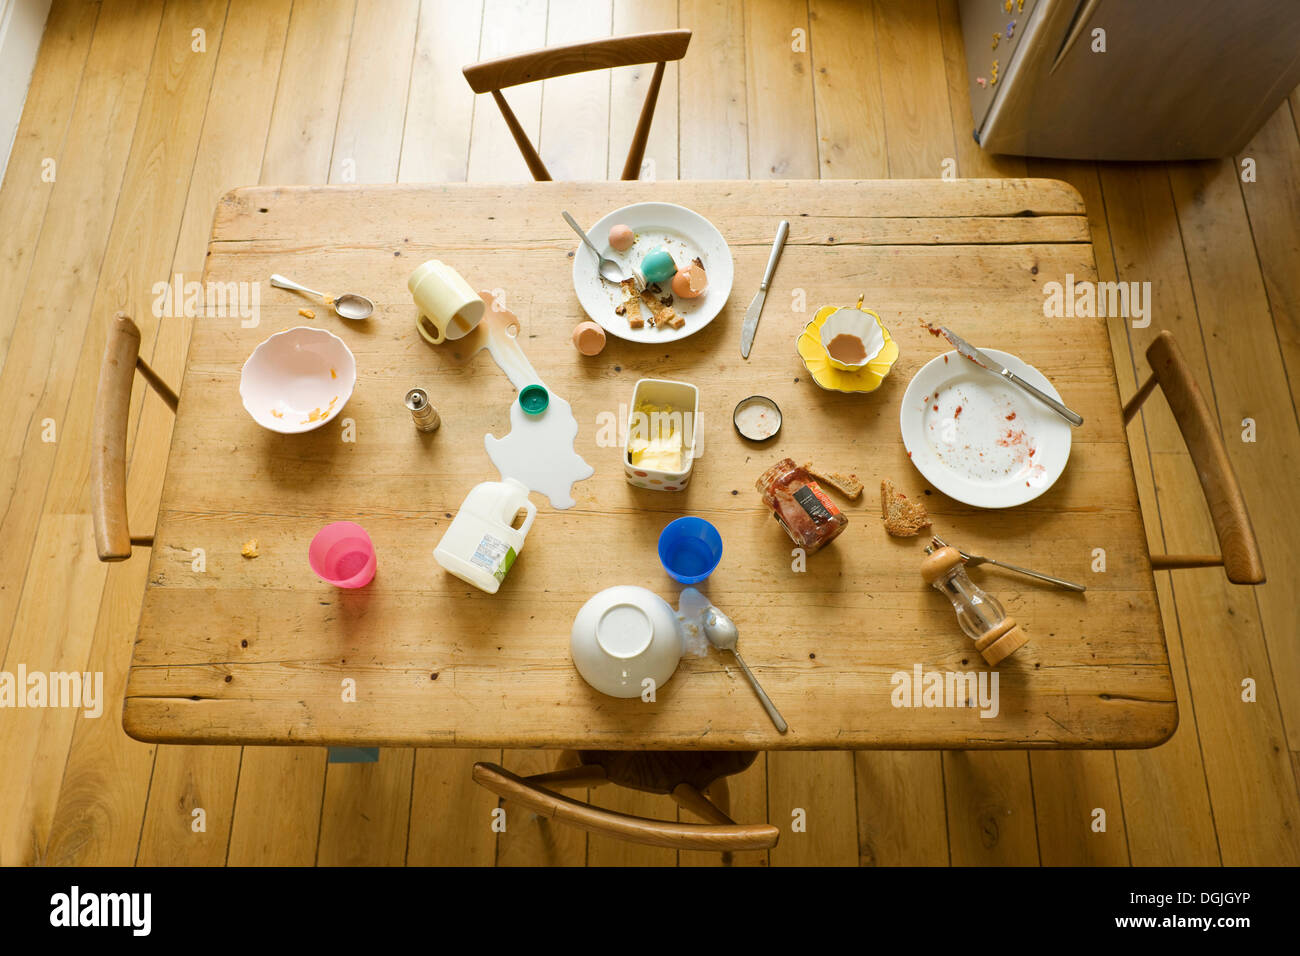 Overhead view of breakfast table with eaten food and messy plates - Stock Image